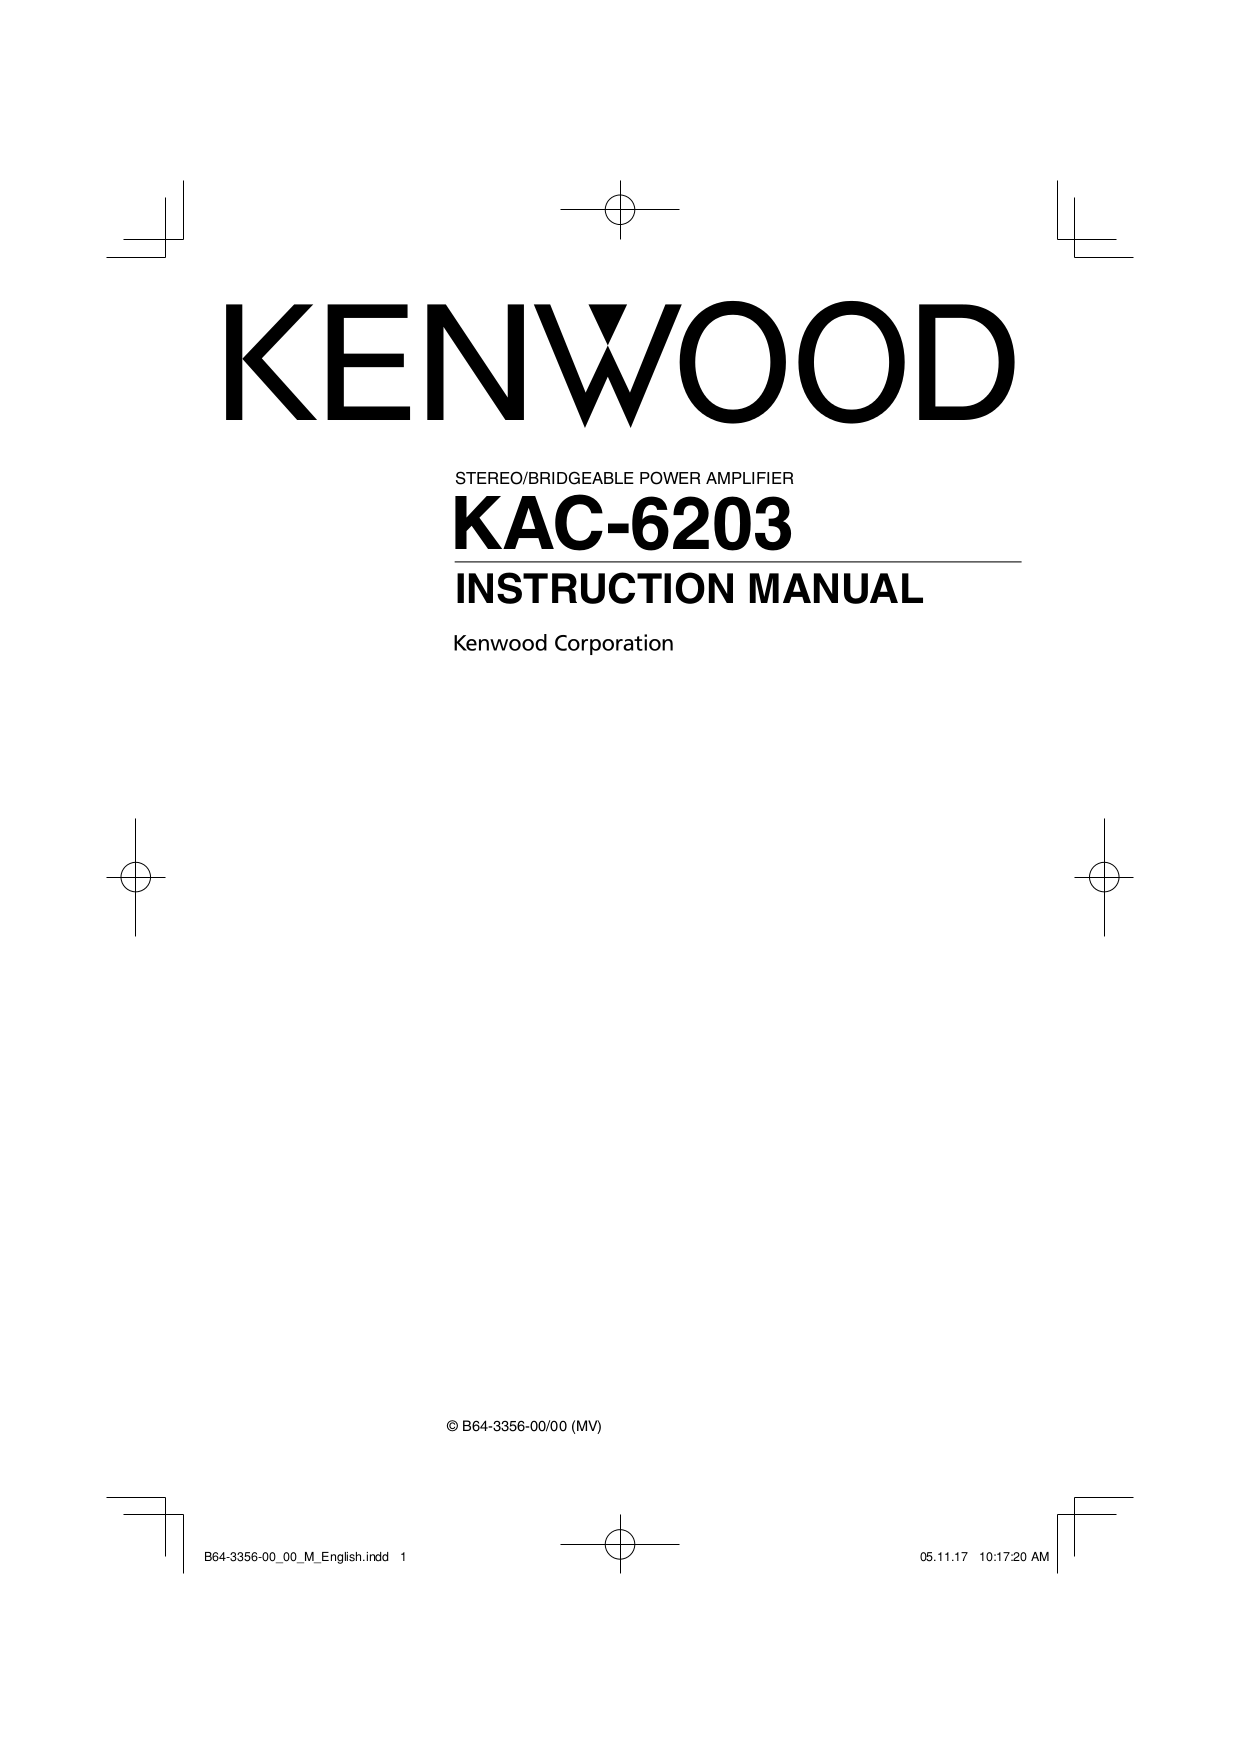 PDF manual for Kenwood Amp KAC-820